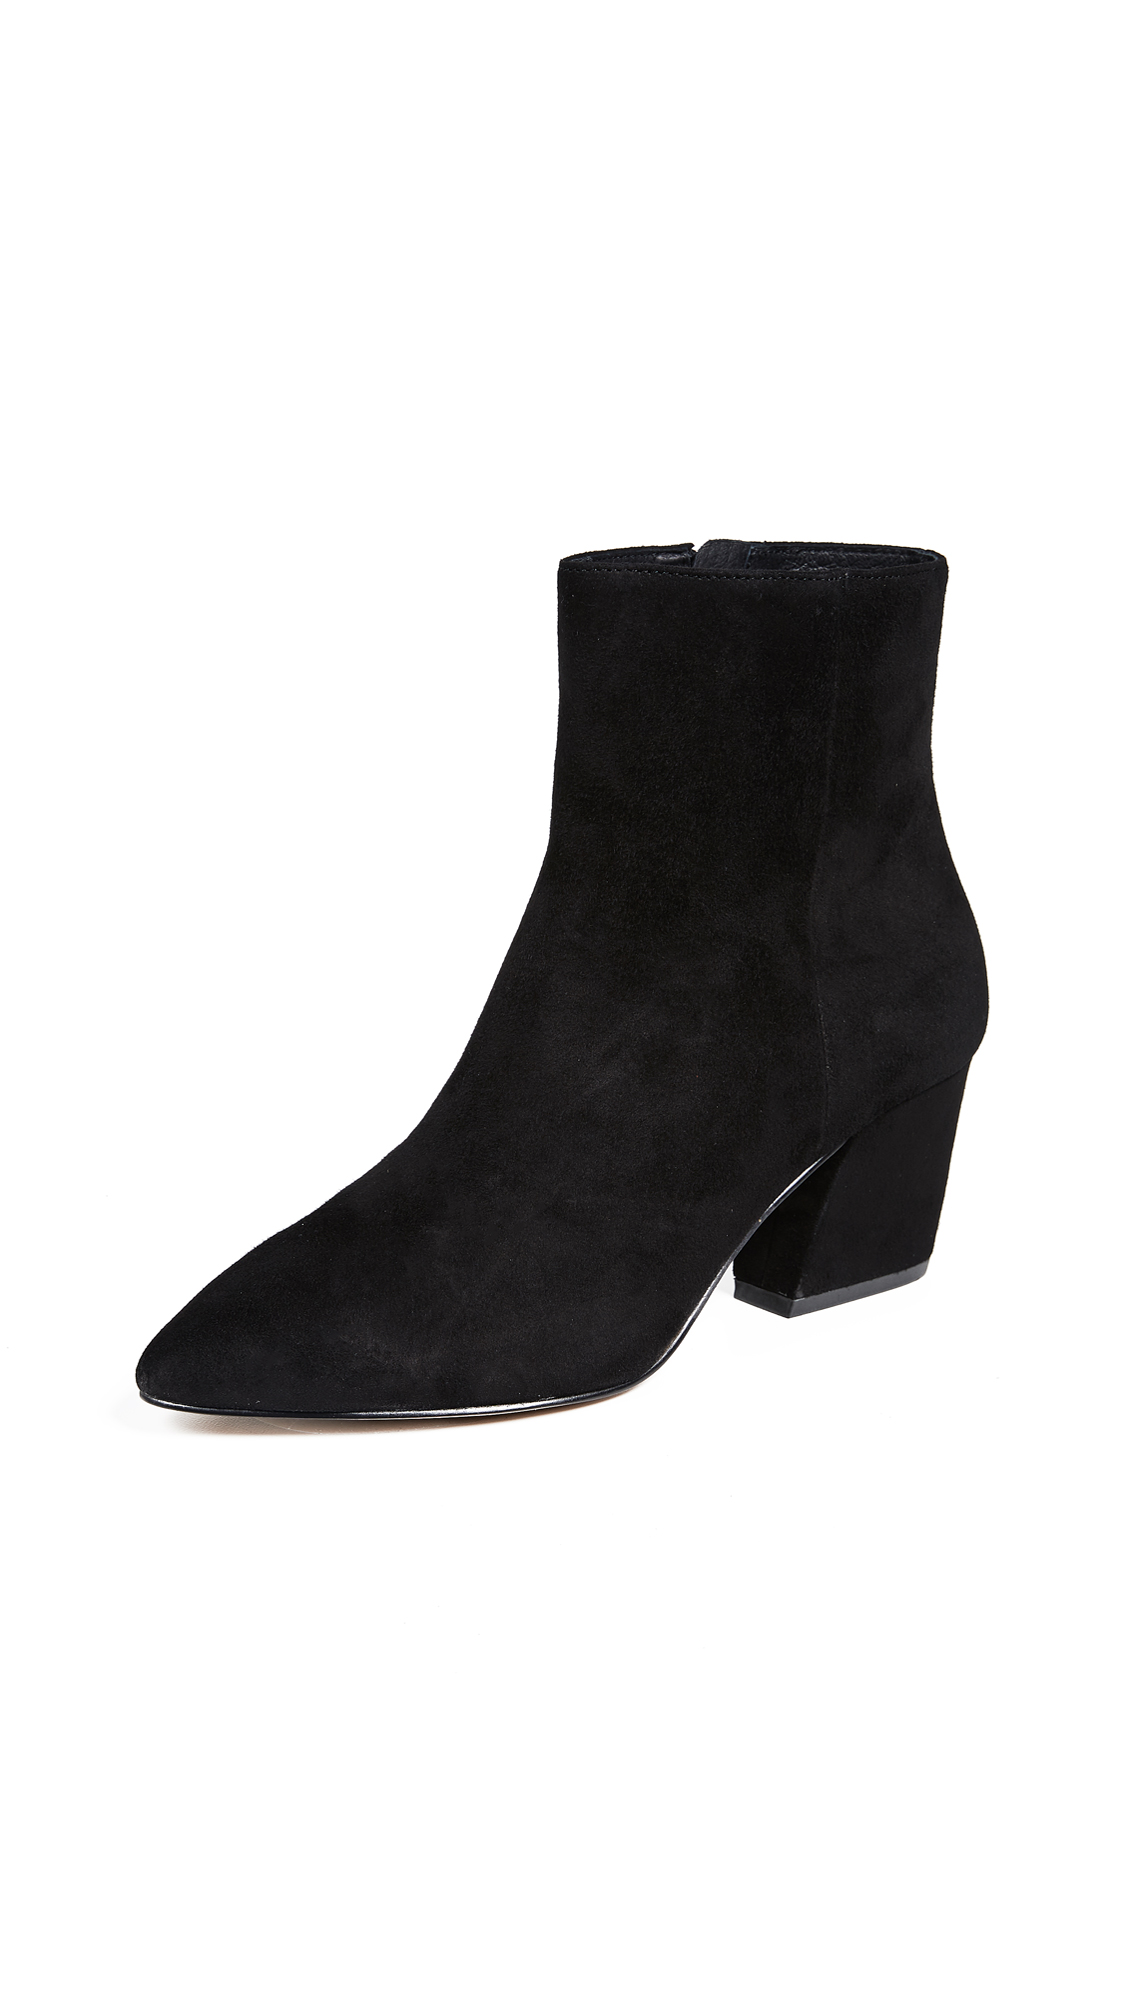 Botkier Sasha Point Toe Booties - Black